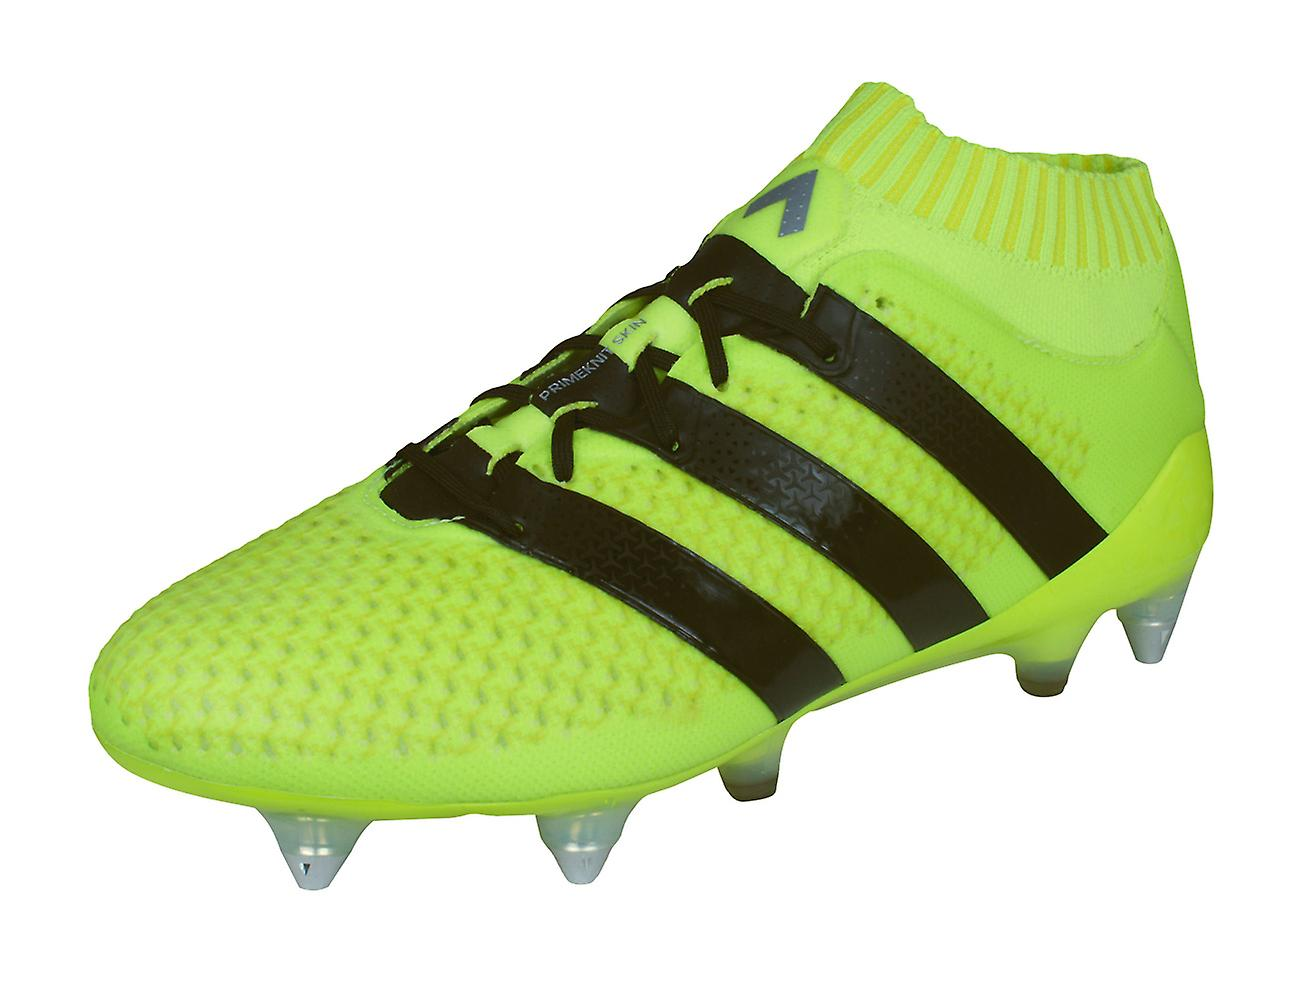 Adidas Ace 16.1 Primeknit SG Mens Football bottes   Cleats - jaune